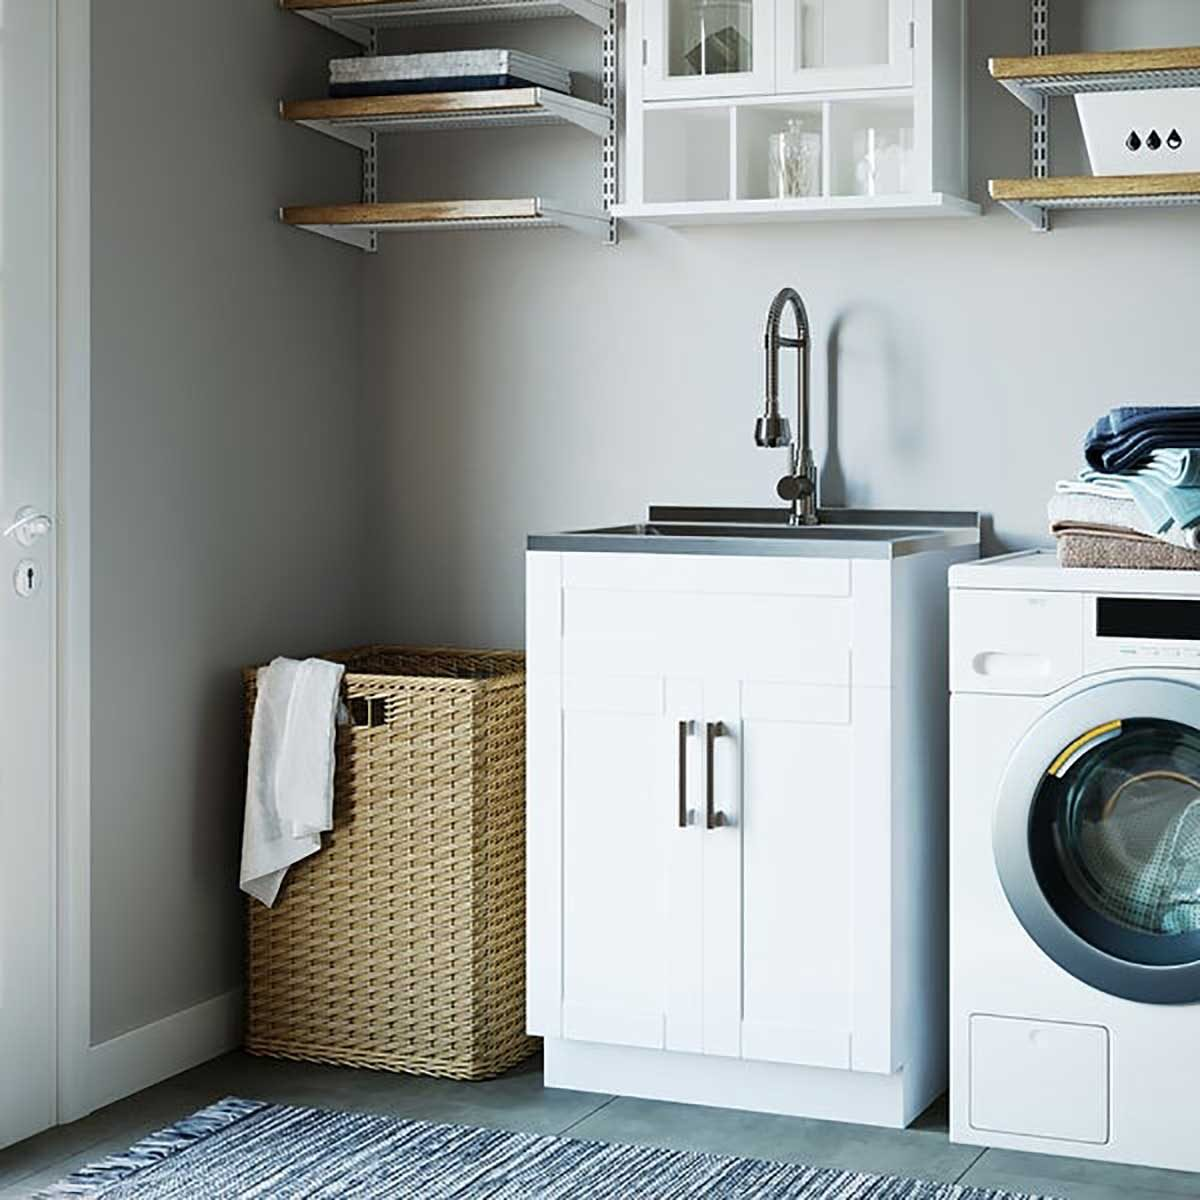 Stainless steel sink laundry